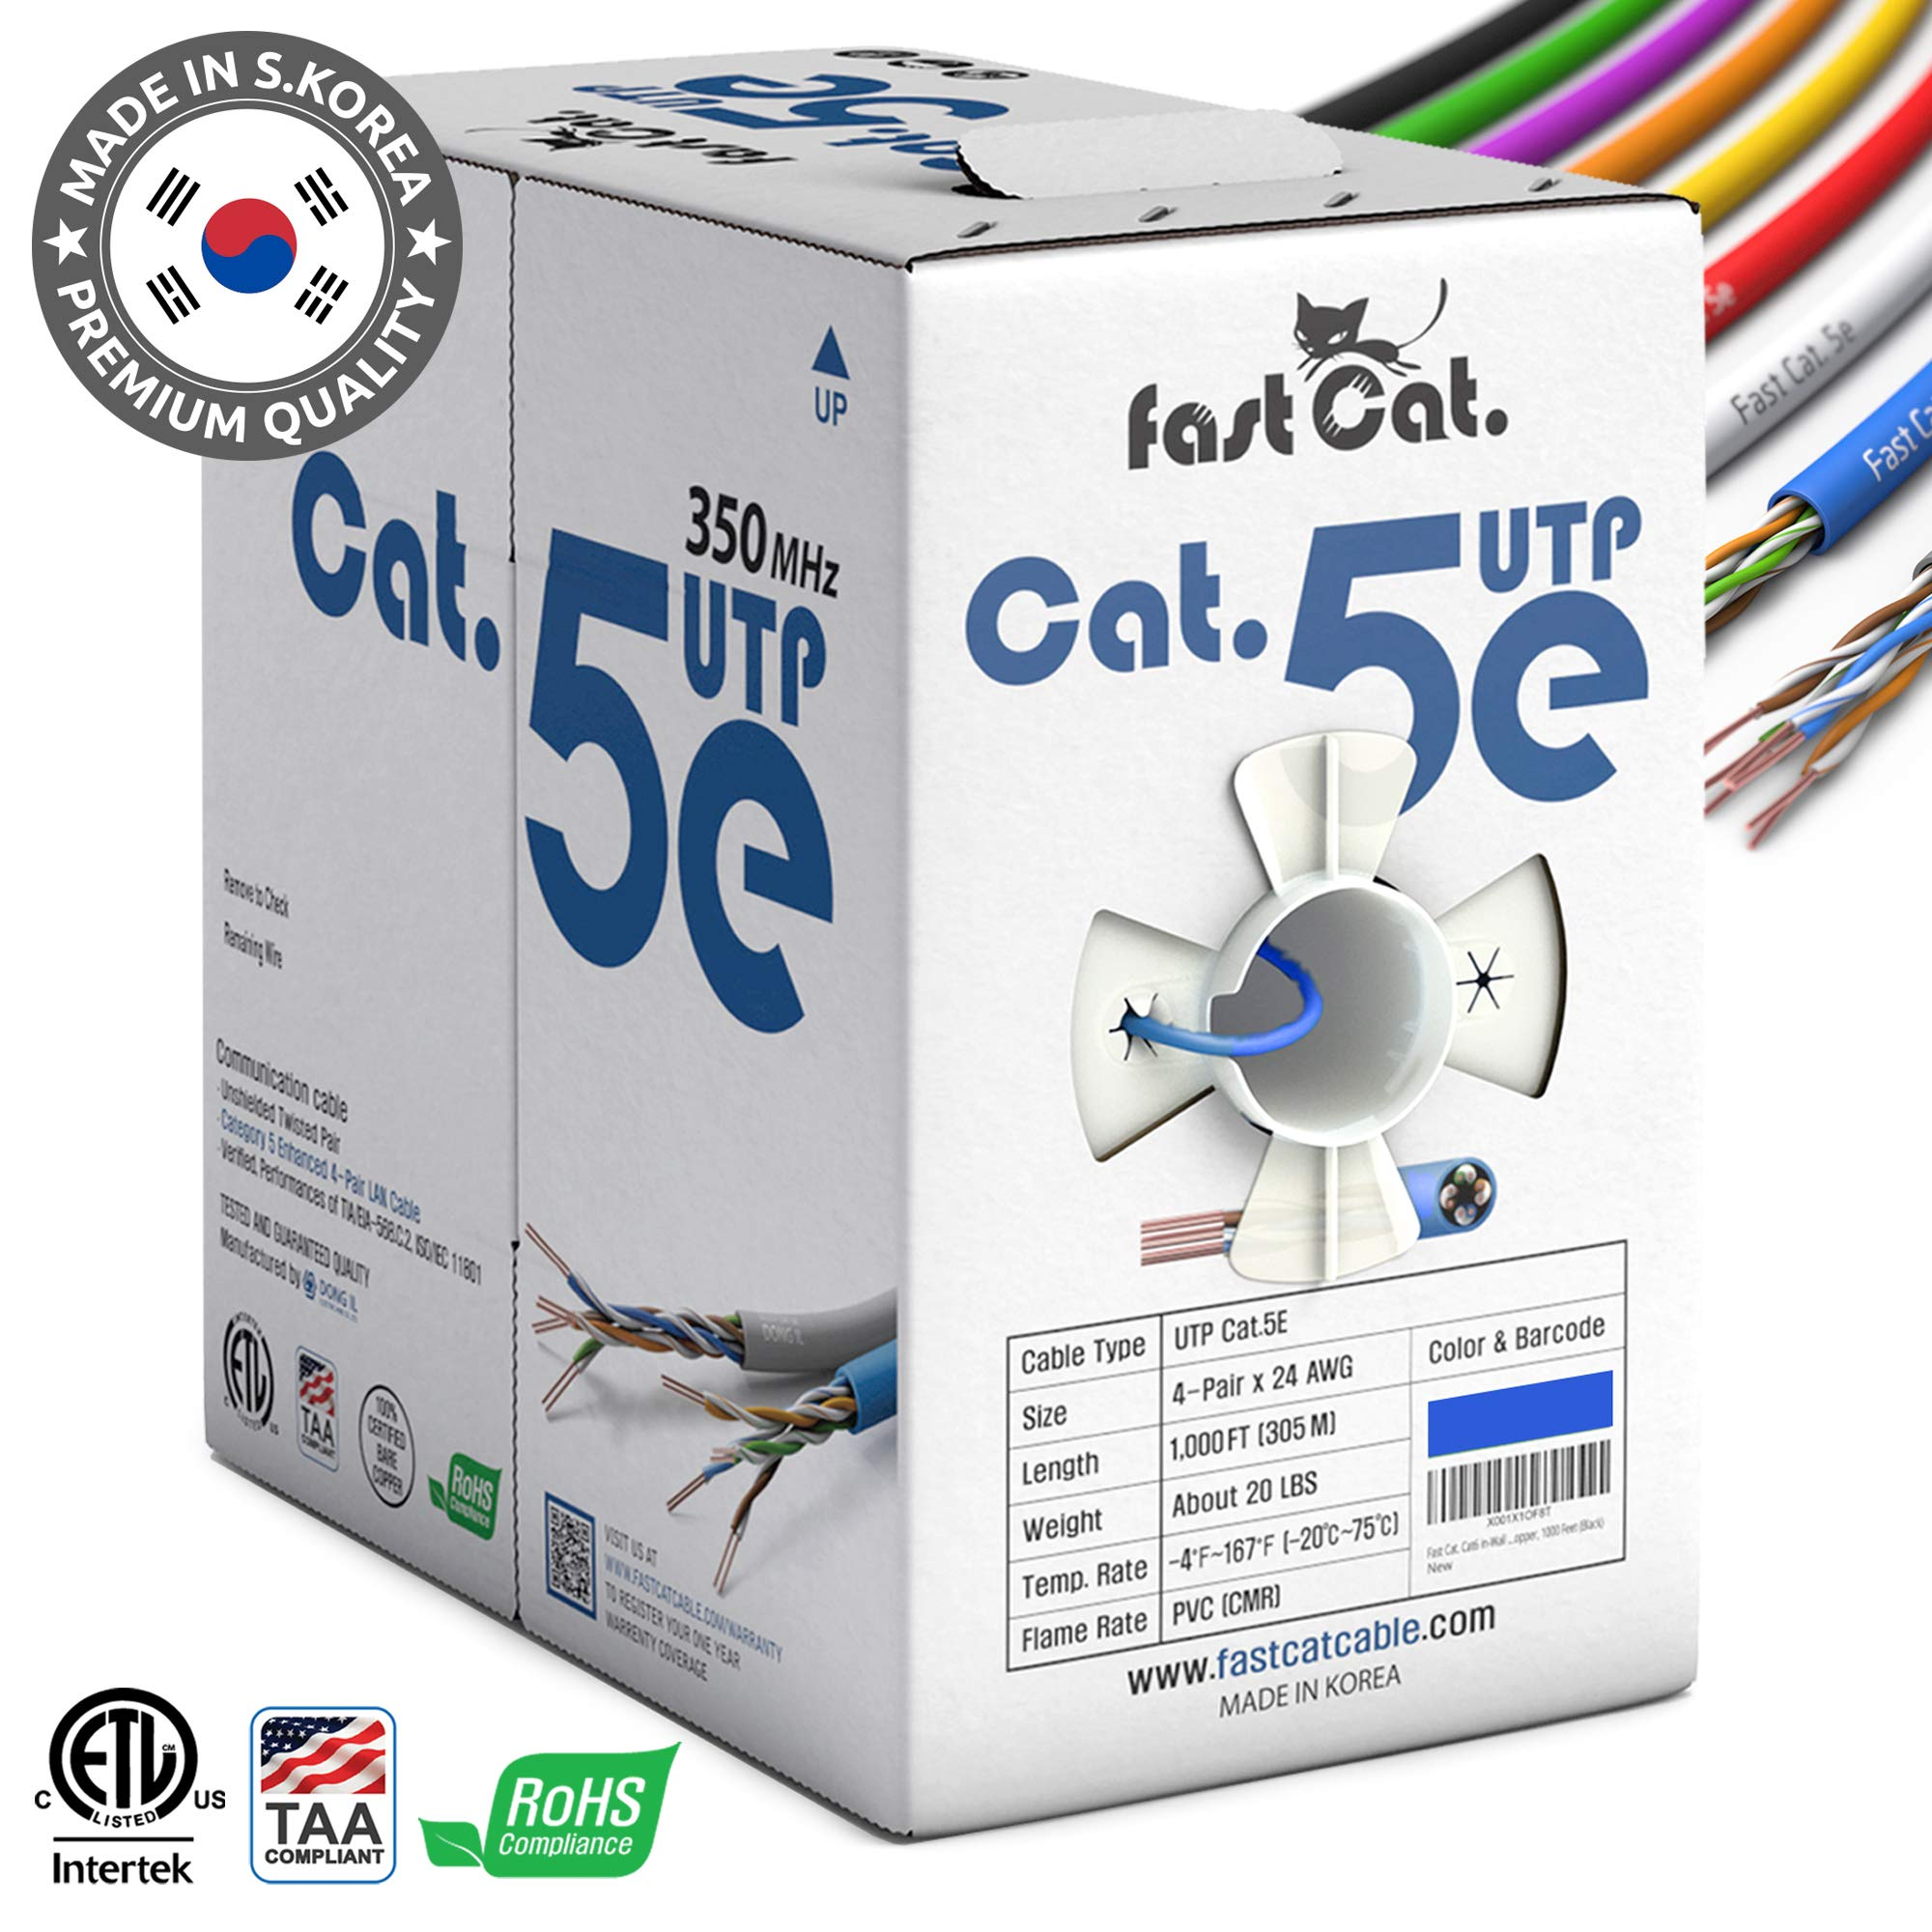 fastCat. Cat5e Ethernet Cable 1000ft - Insulated Bare Copper Wire Internet Cable with FastReel - 350MHZ / Gigabit Speed UTP LAN Cable - CMR (Blue) by fastCat.